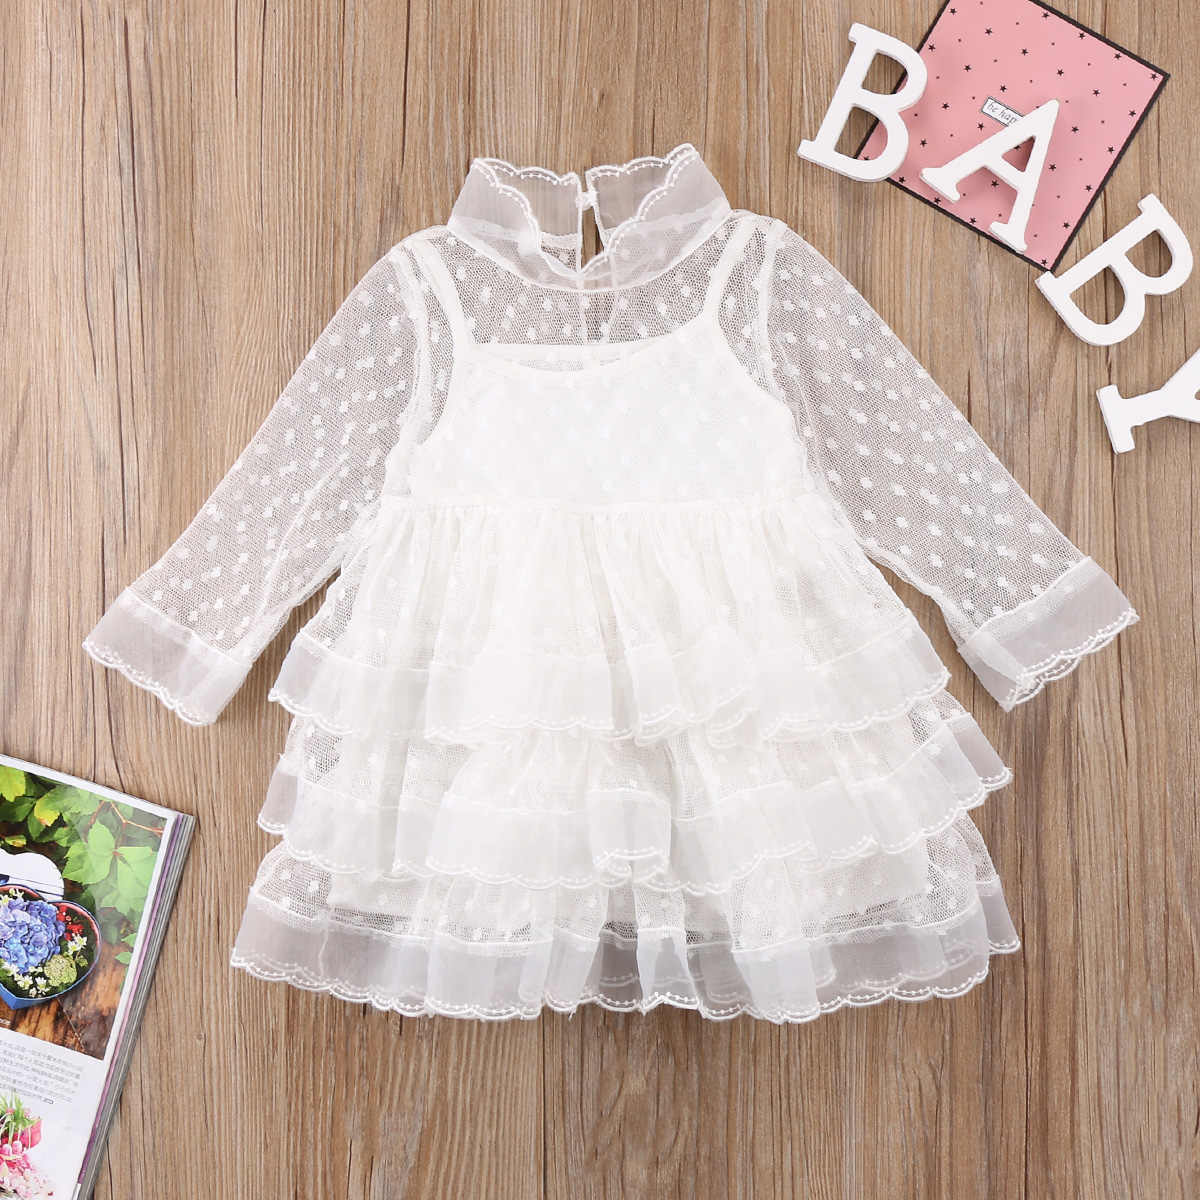 d6688251b6 Cute Kids Baby Girl Princess White Dresses Long Sleeve Party Dot ...